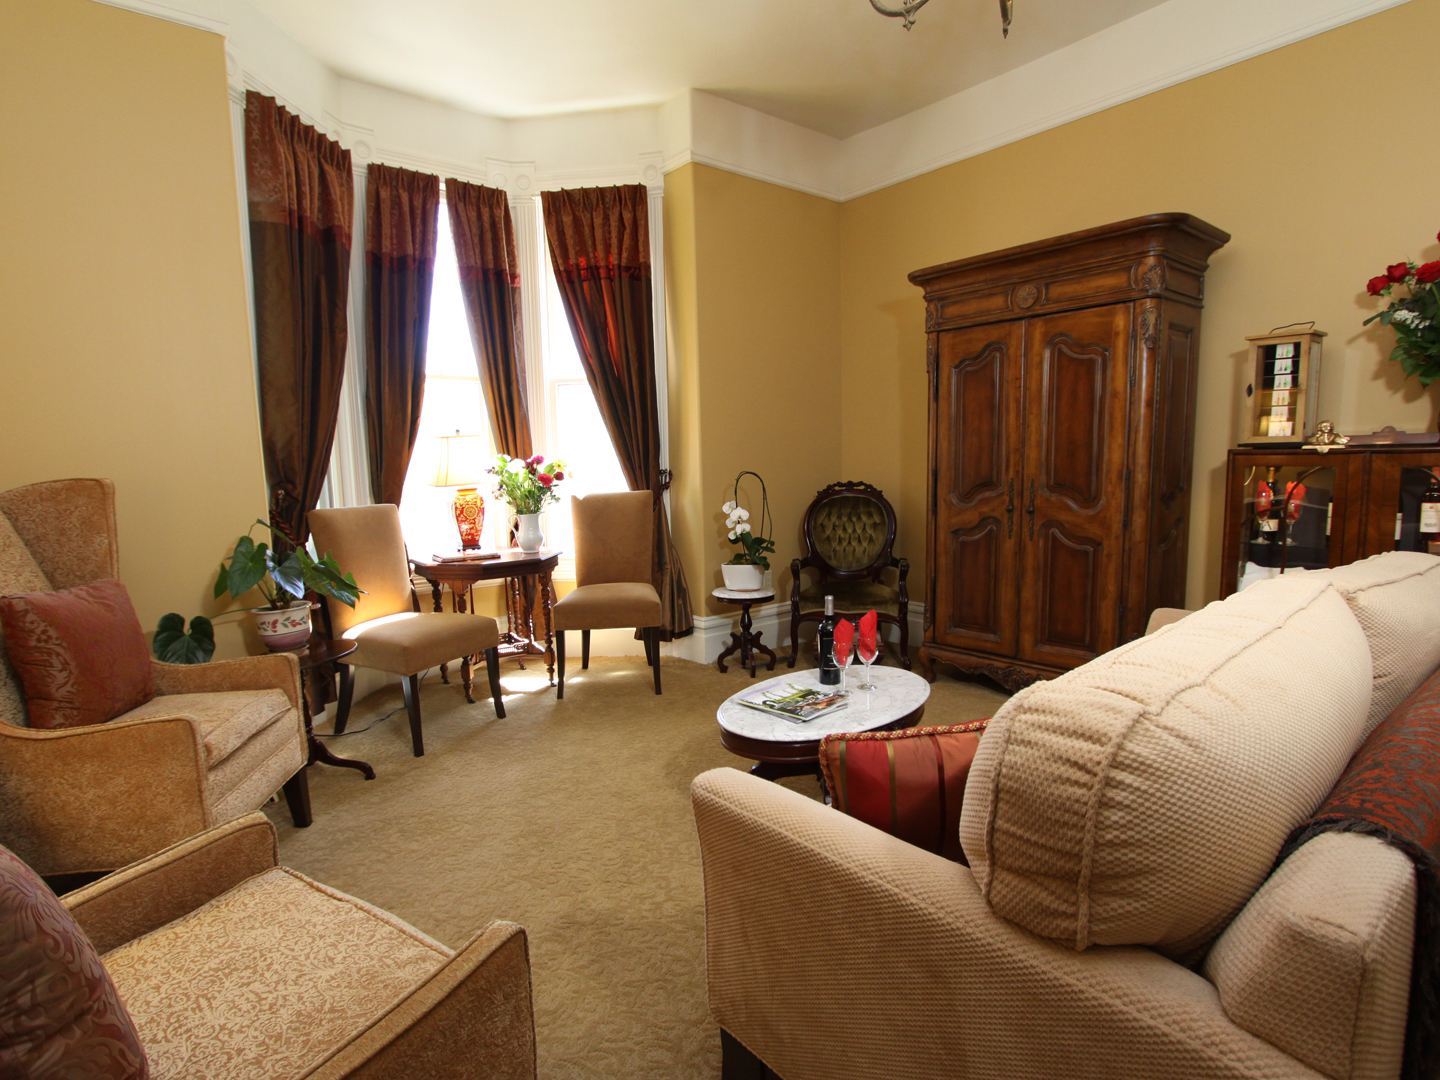 A living room filled with furniture and a lamp at Hennessey House.